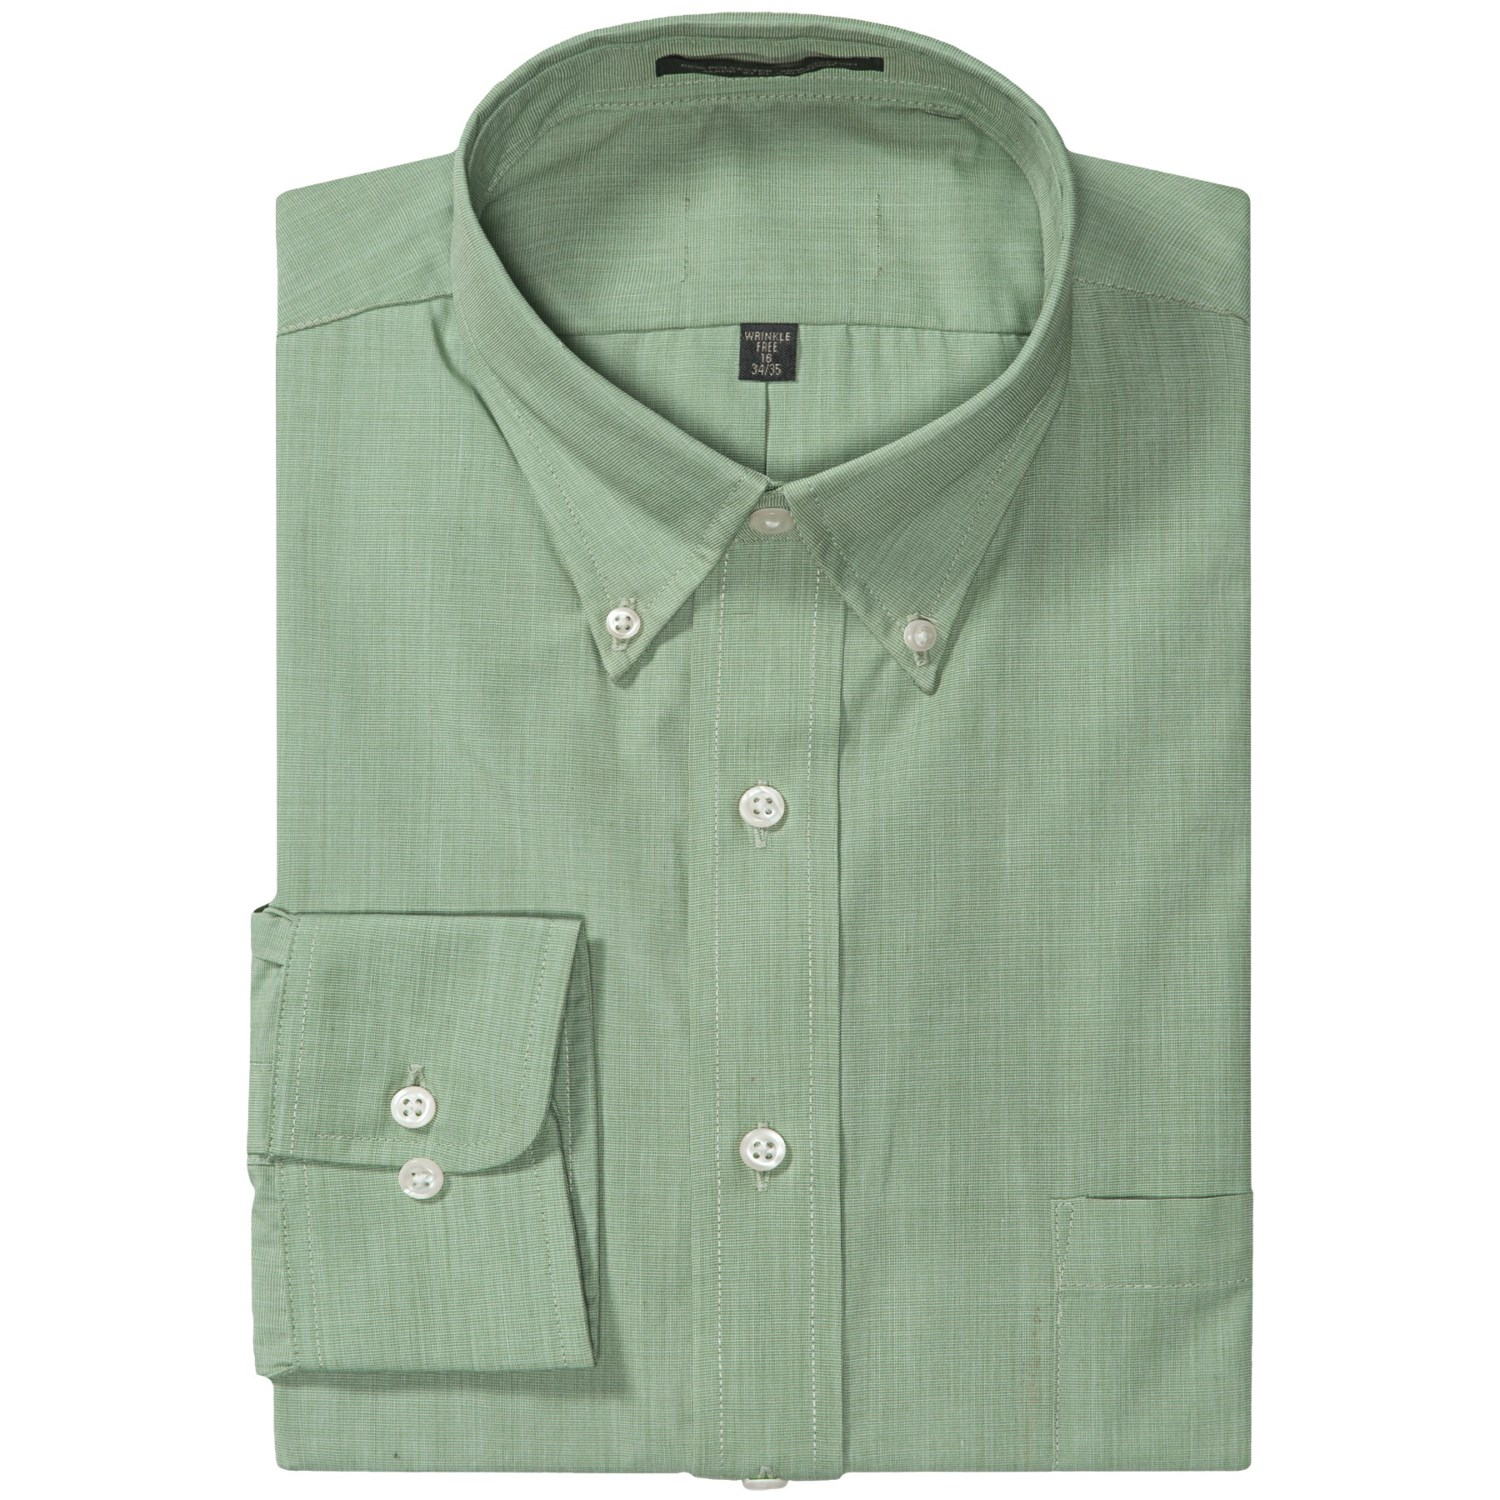 Easy Care Dress Shirt Button Down Long Sleeve For Men